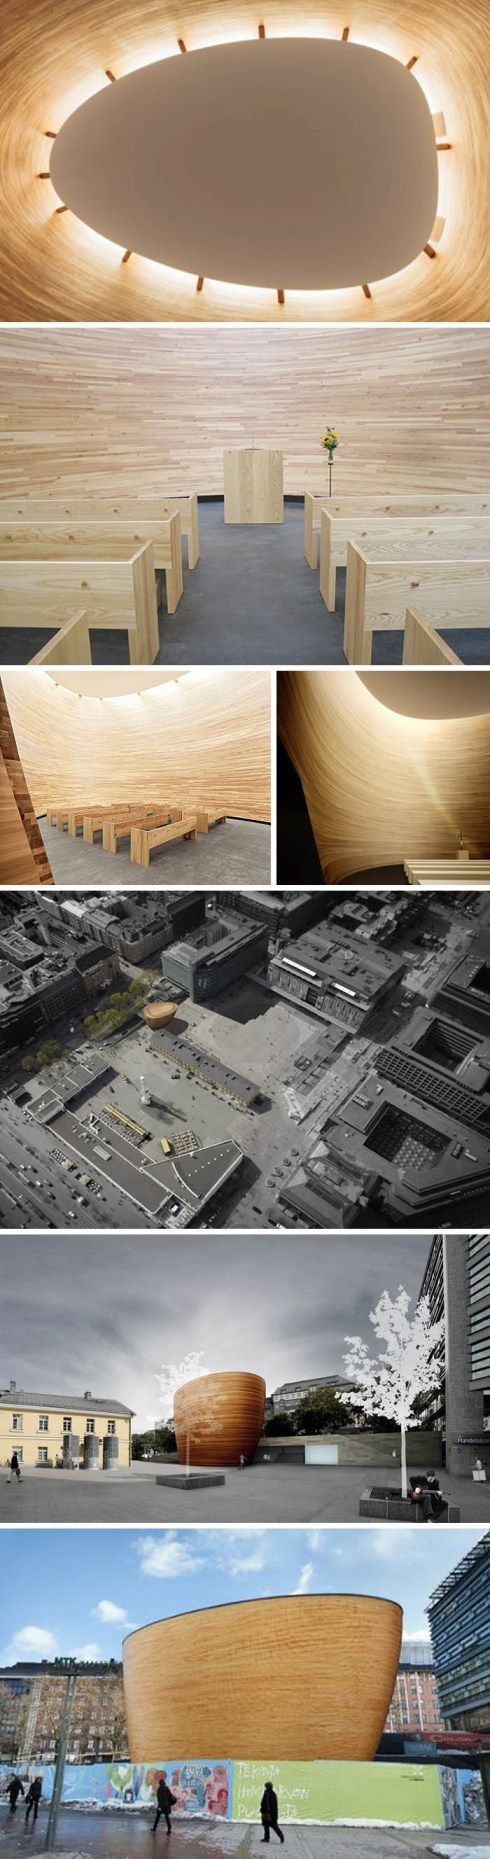 Kampi-Chapel-Of-Silence-K2S-Architects_collabcubed